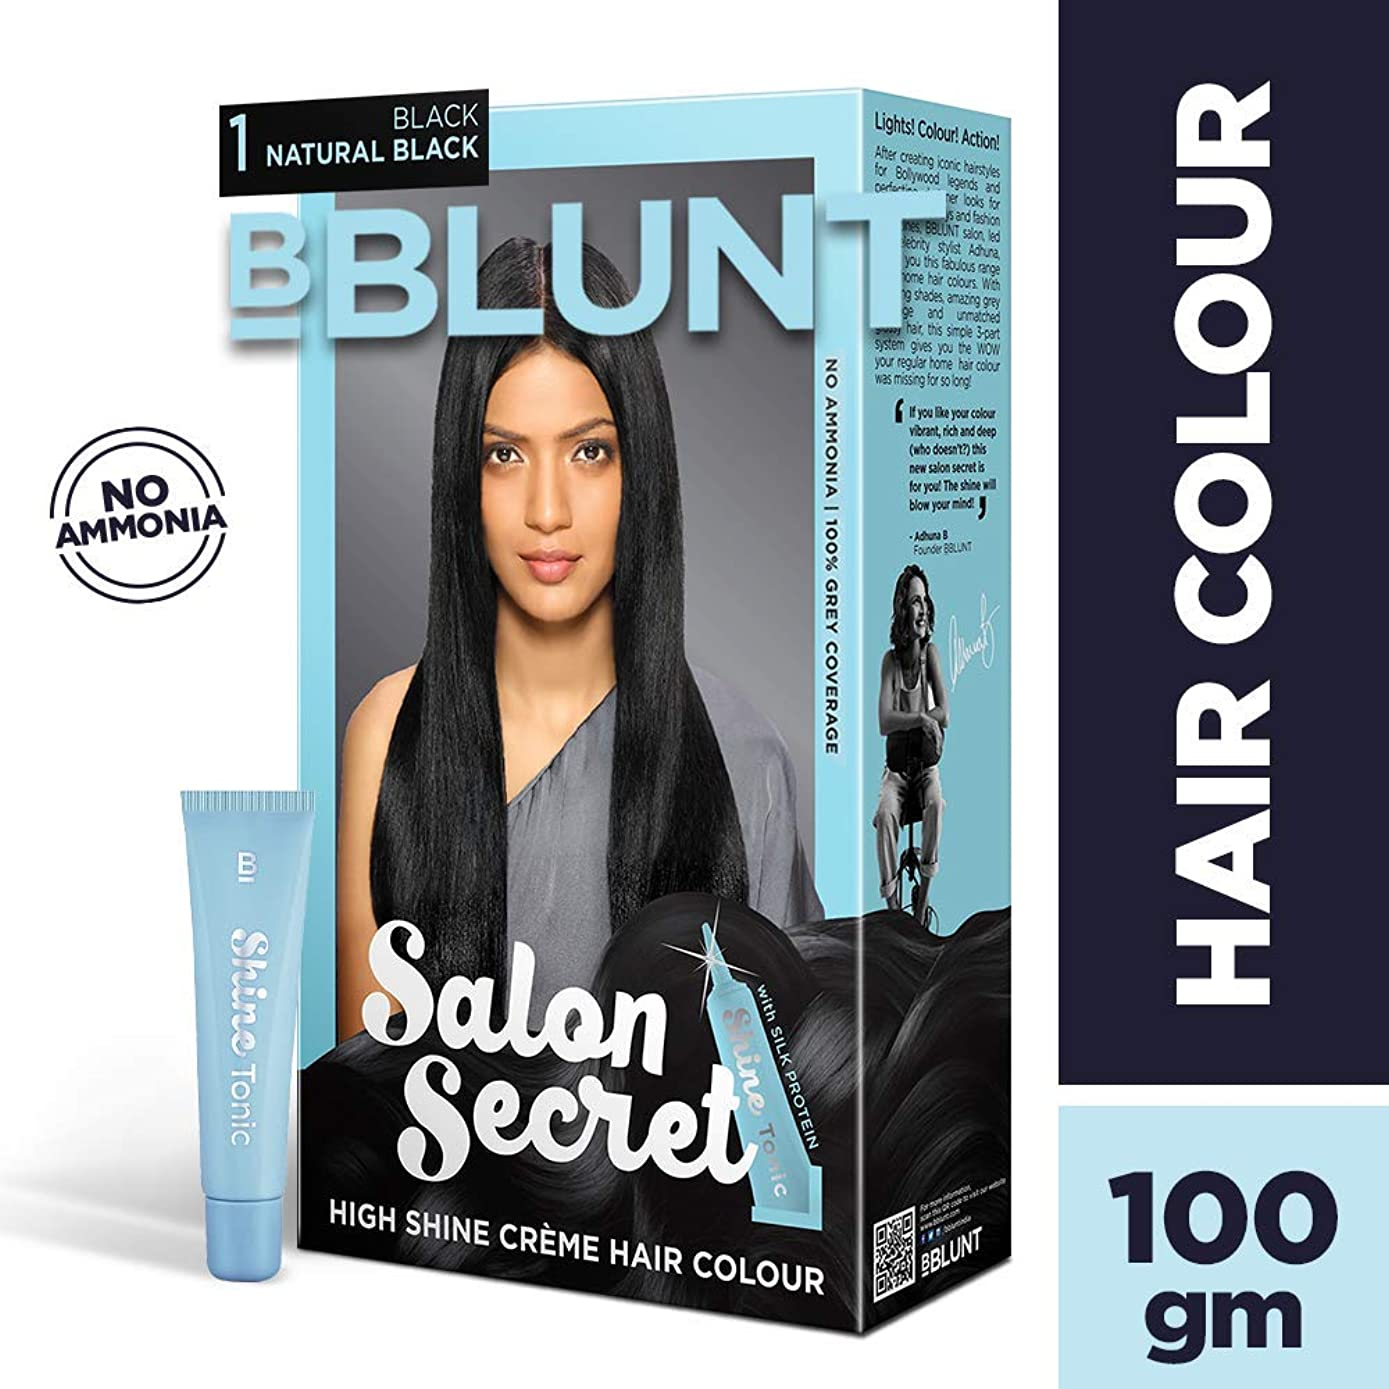 サイクルカイウス自明BBLUNT Salon Secret High Shine Creme Hair Colour, Black Natural Black 1, 100g with Shine Tonic, 8ml